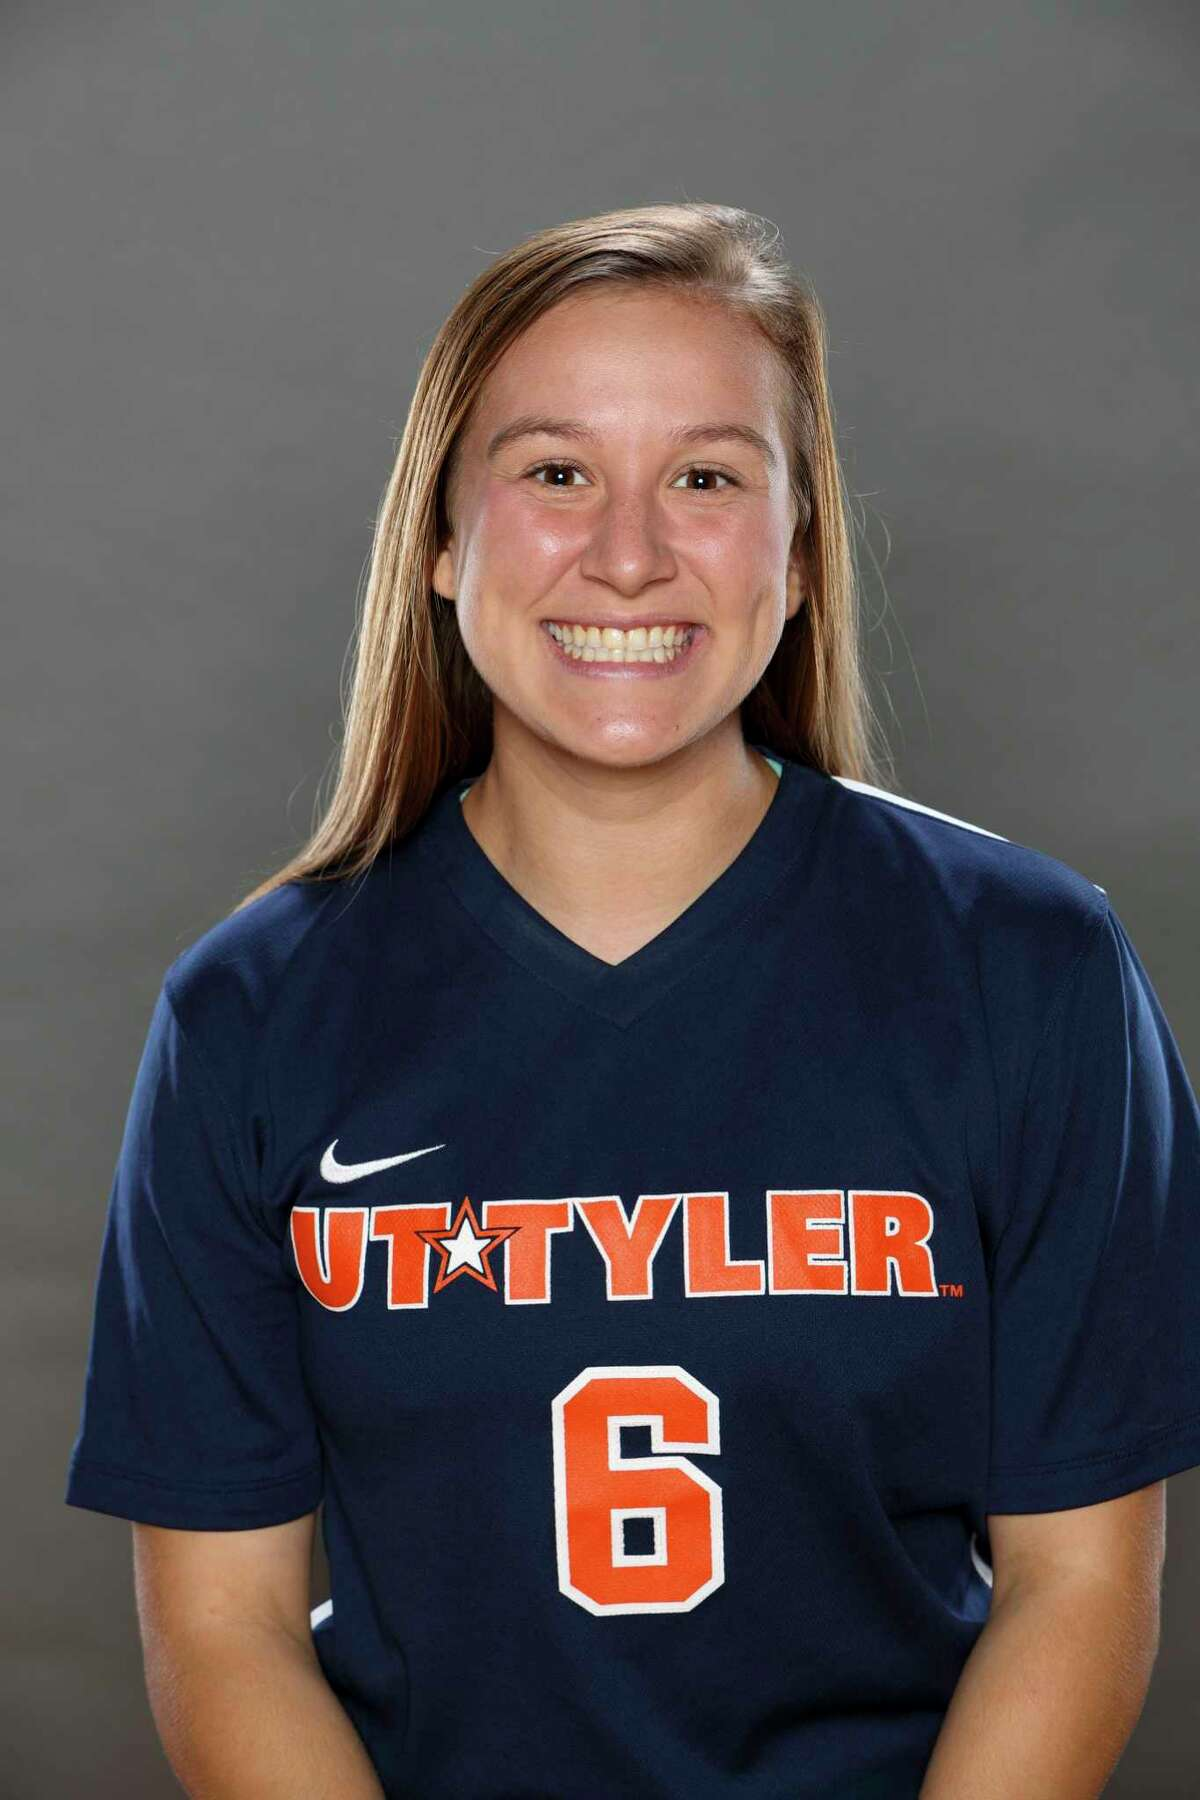 Seven Lakes graduate and University of Texas at Tyler senior Caitlyn Mortus helped lead the Patriots to an 11-5-1 season and the American Southwest Conference semifinals. Mortus finished with 16 career goals.